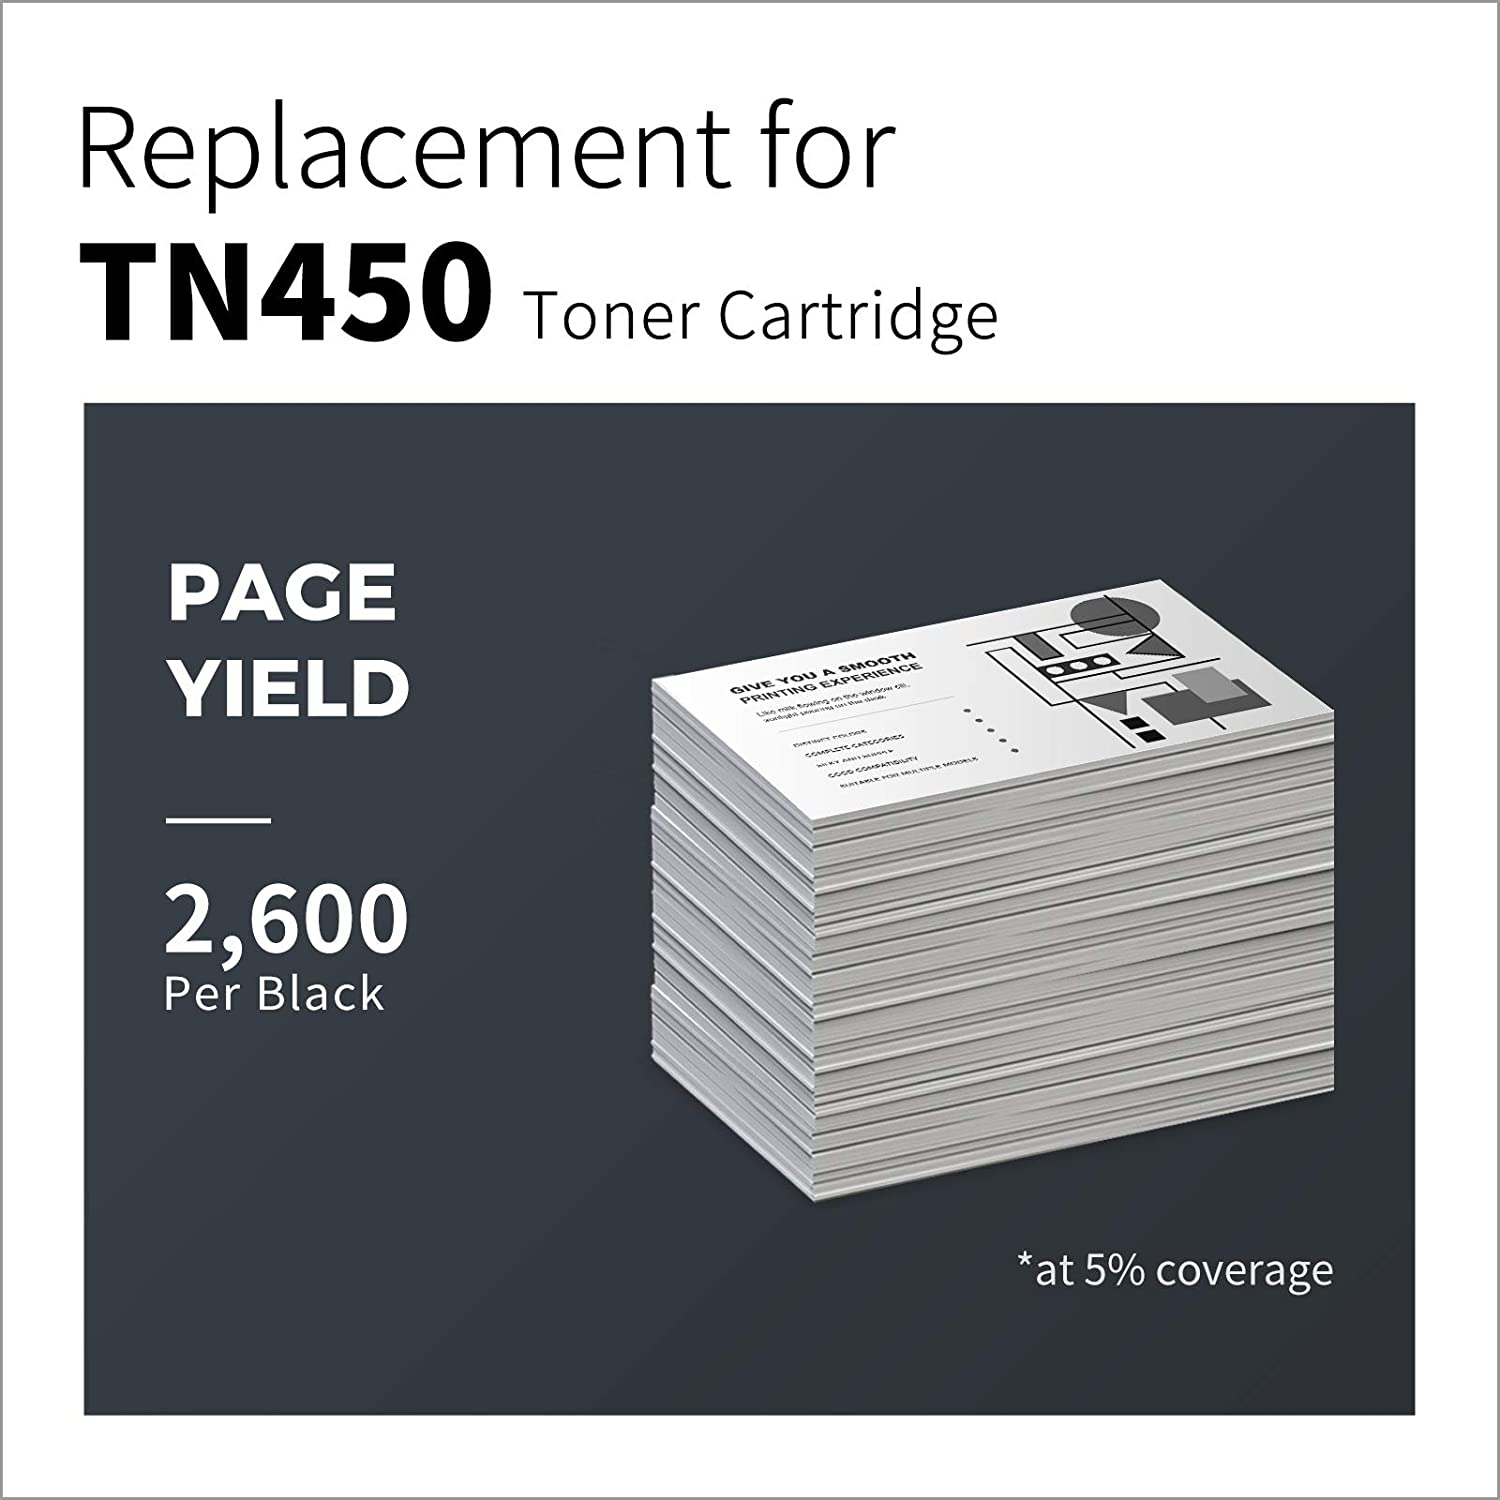 LemeroSuperx Compatible Toner Cartridges Replacement for Brother TN450 TN-450 TN420 Work for IntelliFax-2840 MFC-7860DW HL-2270DW HL-2280DW MFC-7360N HL-2240 (Black, 2 Pack)